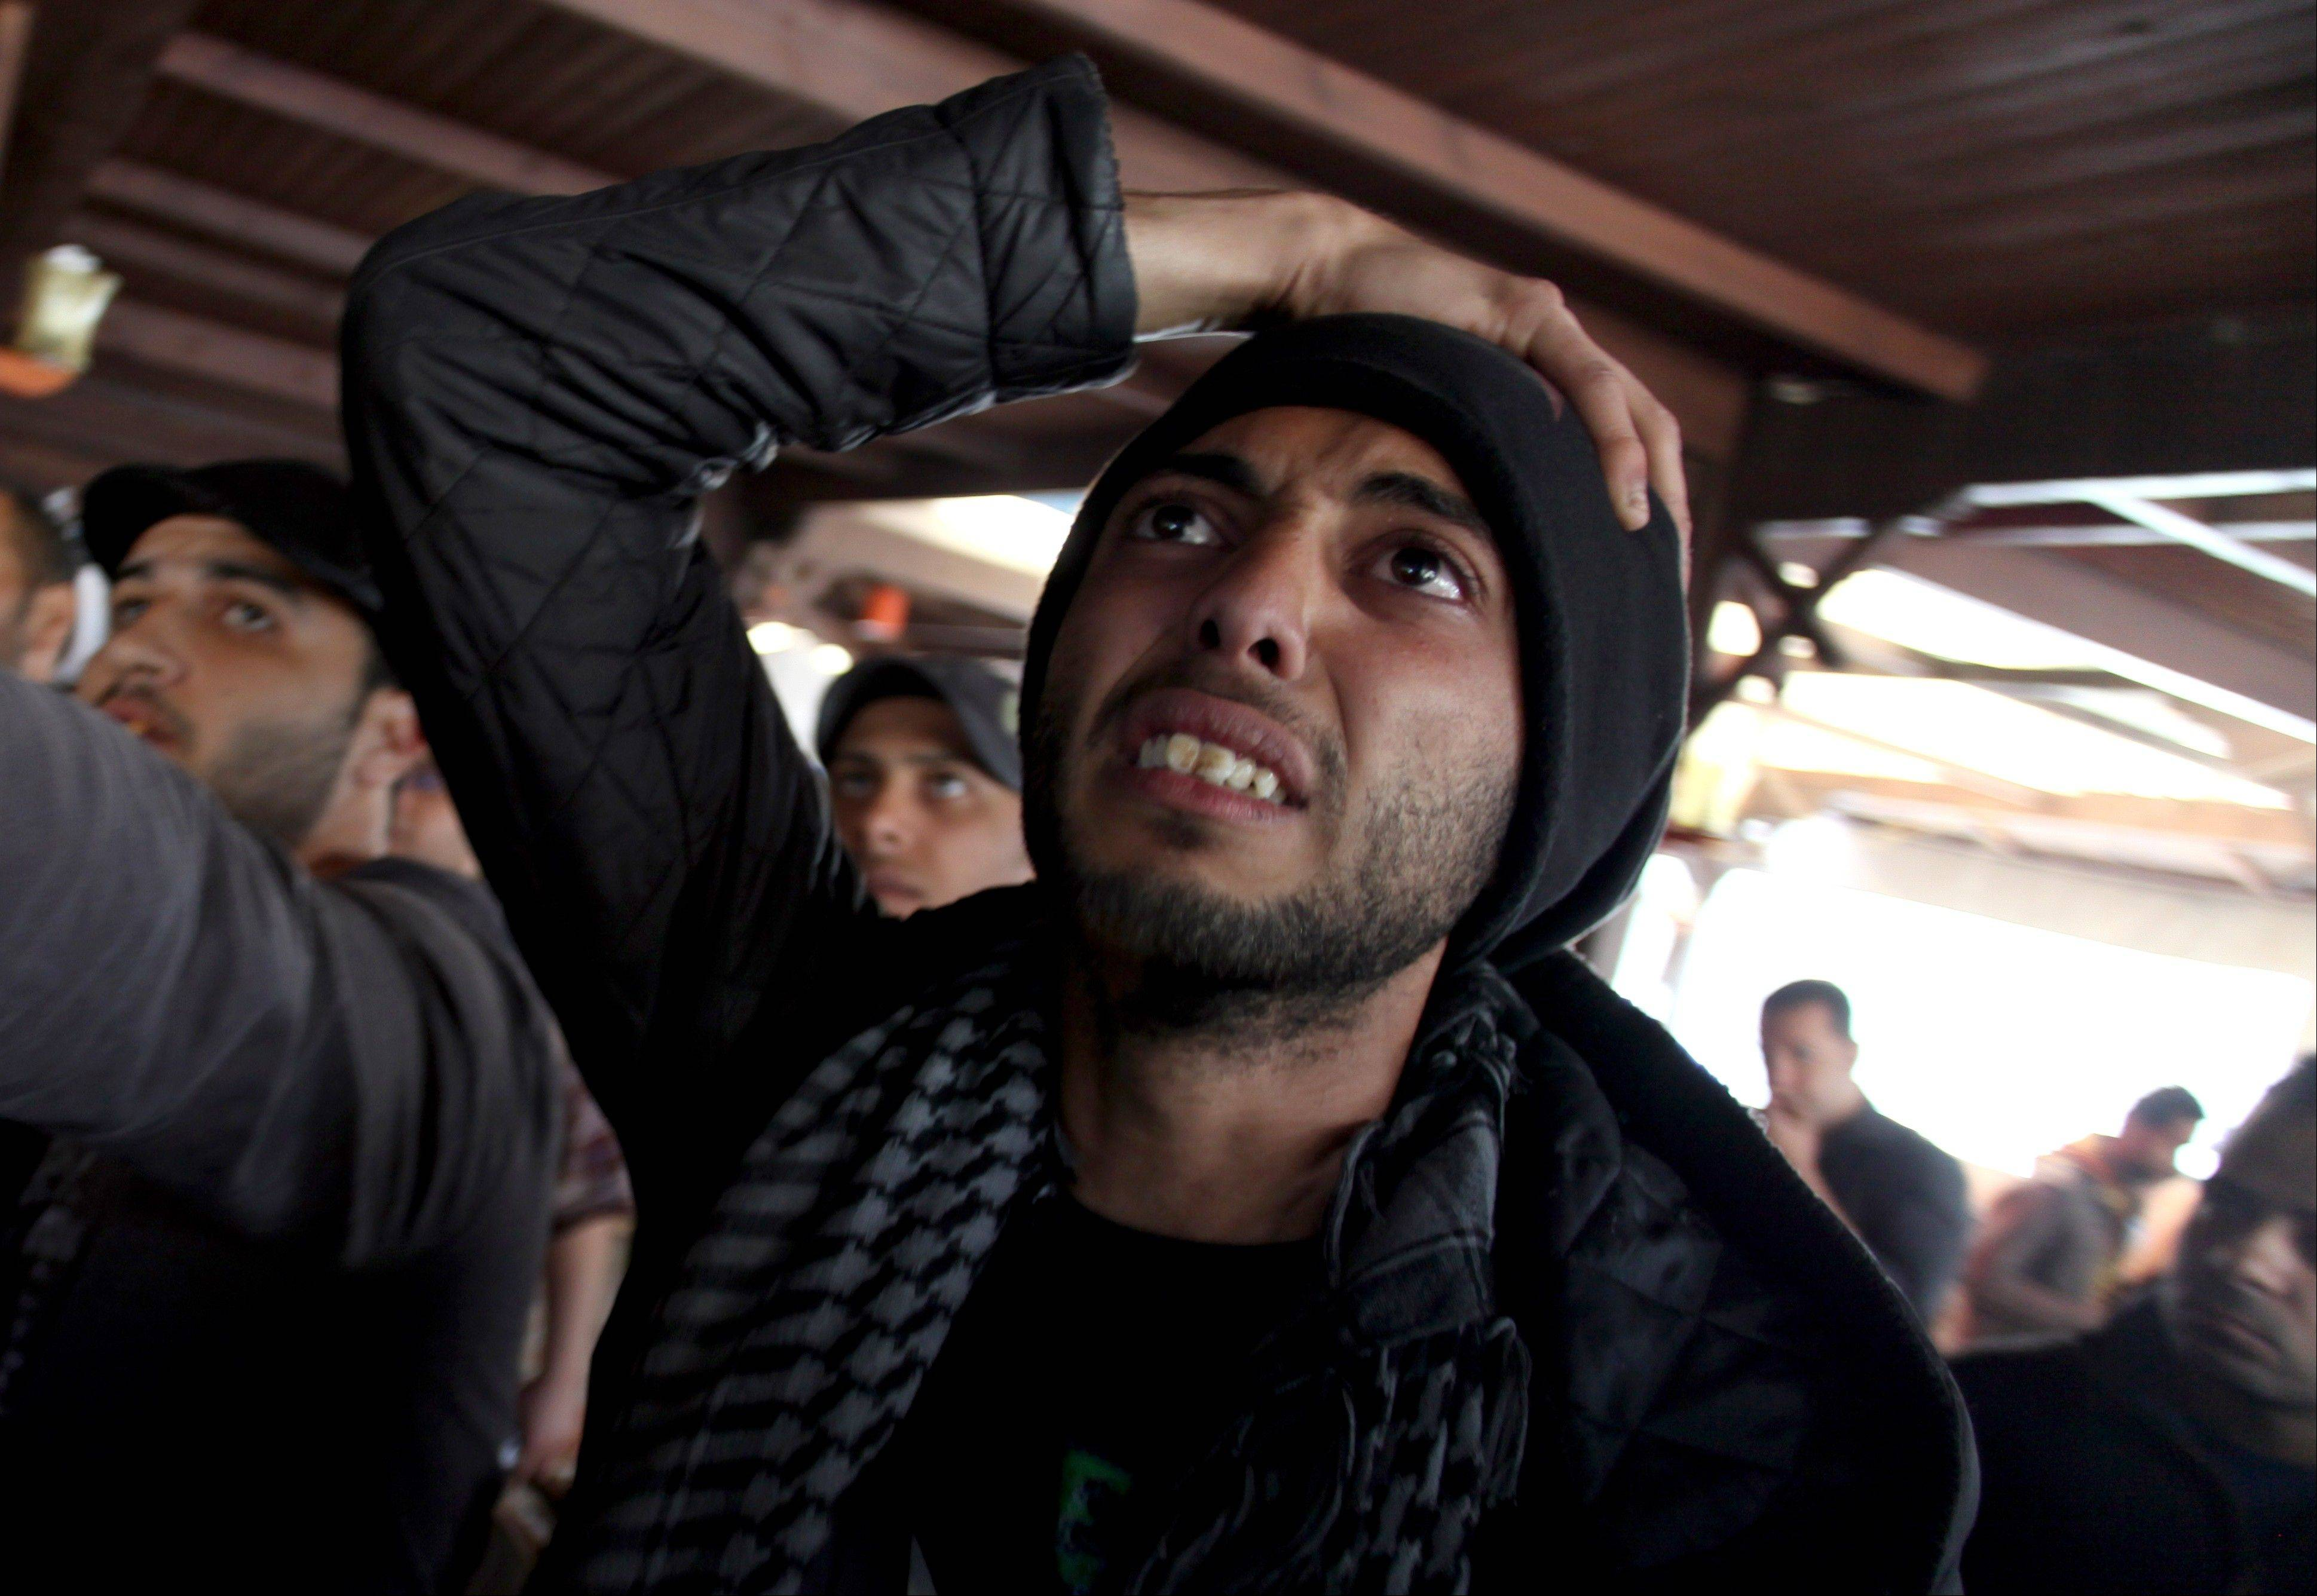 An Egyptian man reacts Saturday as he watches a televised court verdict confirming death sentences against 21 people for their role in a deadly 2012 soccer riot, in a coffee shop in Port Said, Egypt.